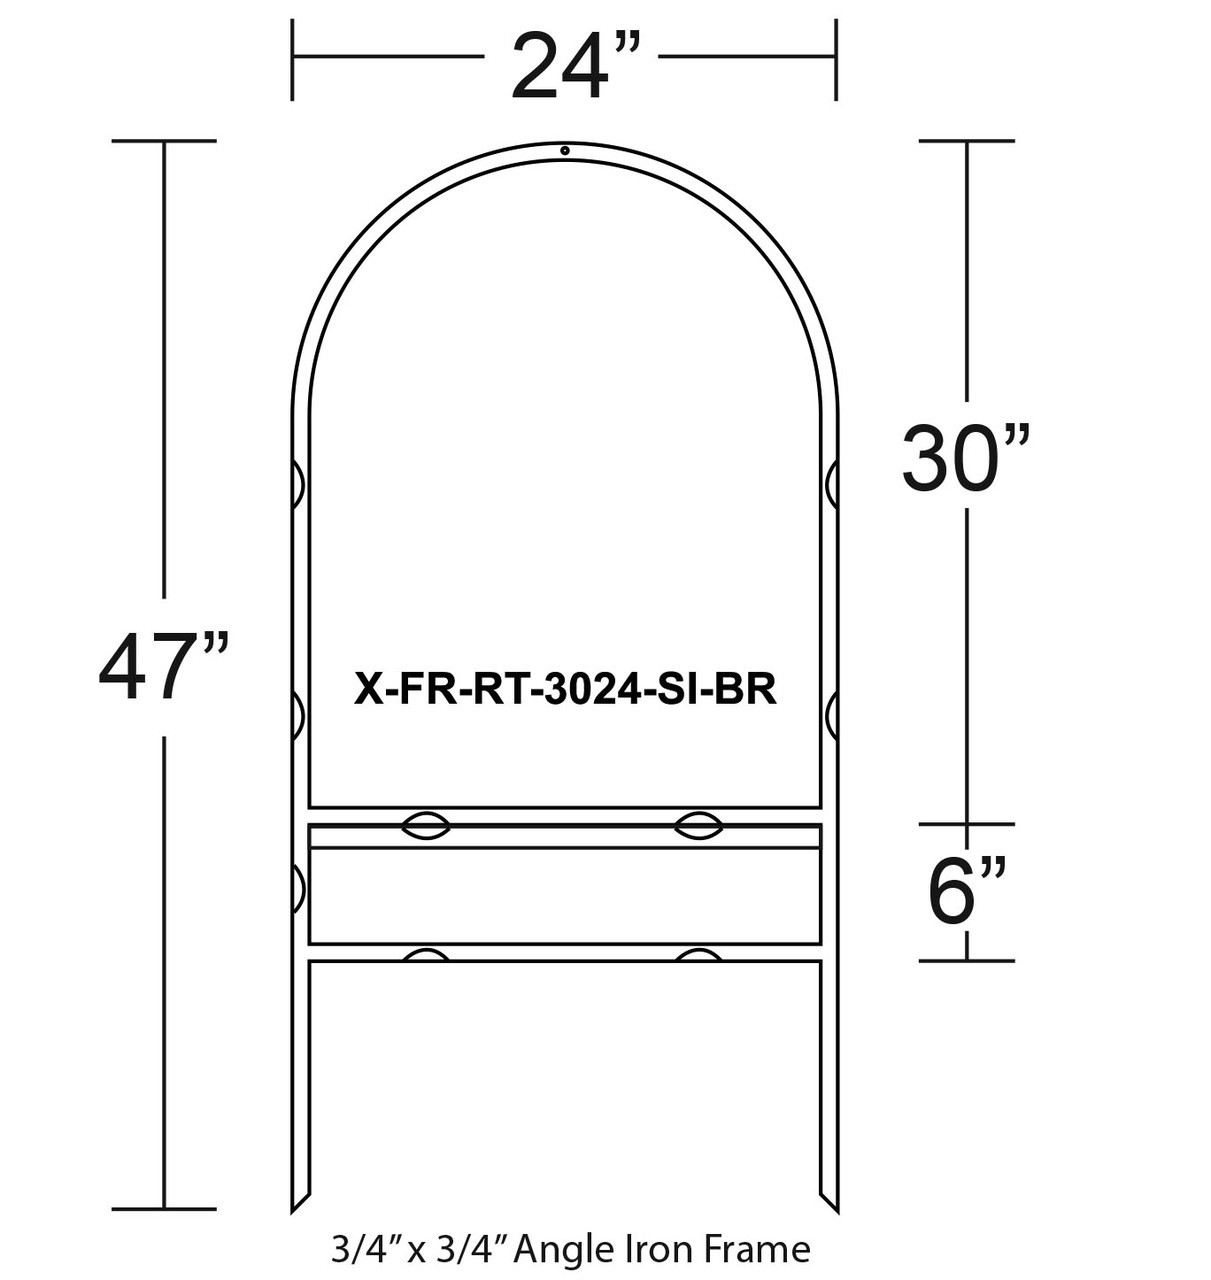 SKU# X-FR-RT-3024-SI-BR WITH DIMENSIONS